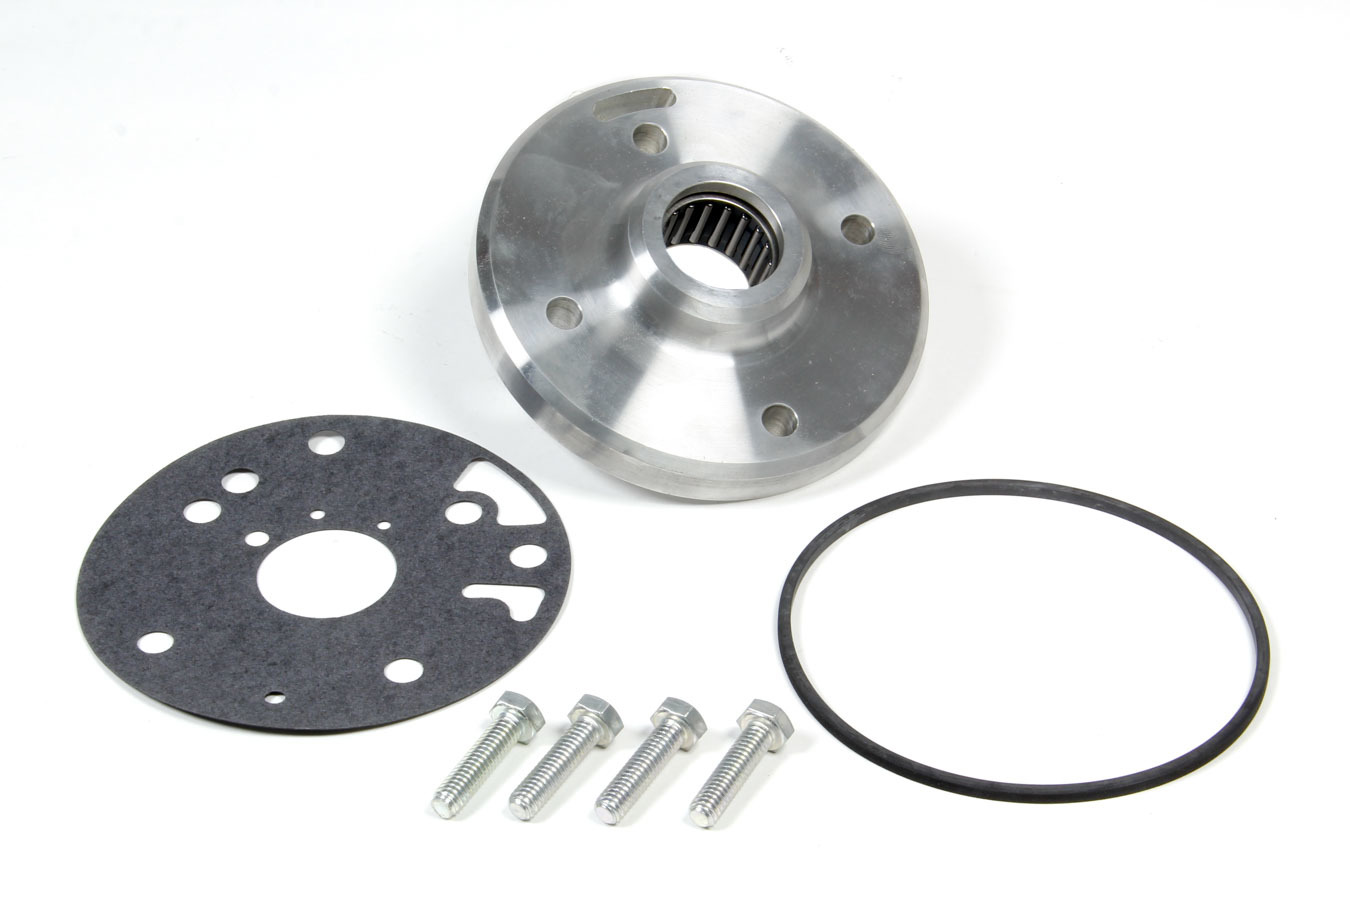 TSR Racing Products APG-28808K Governor Support, Billet, Needle Bearing, Hardware Included, Aluminum, Polished, Powerglide, Kit